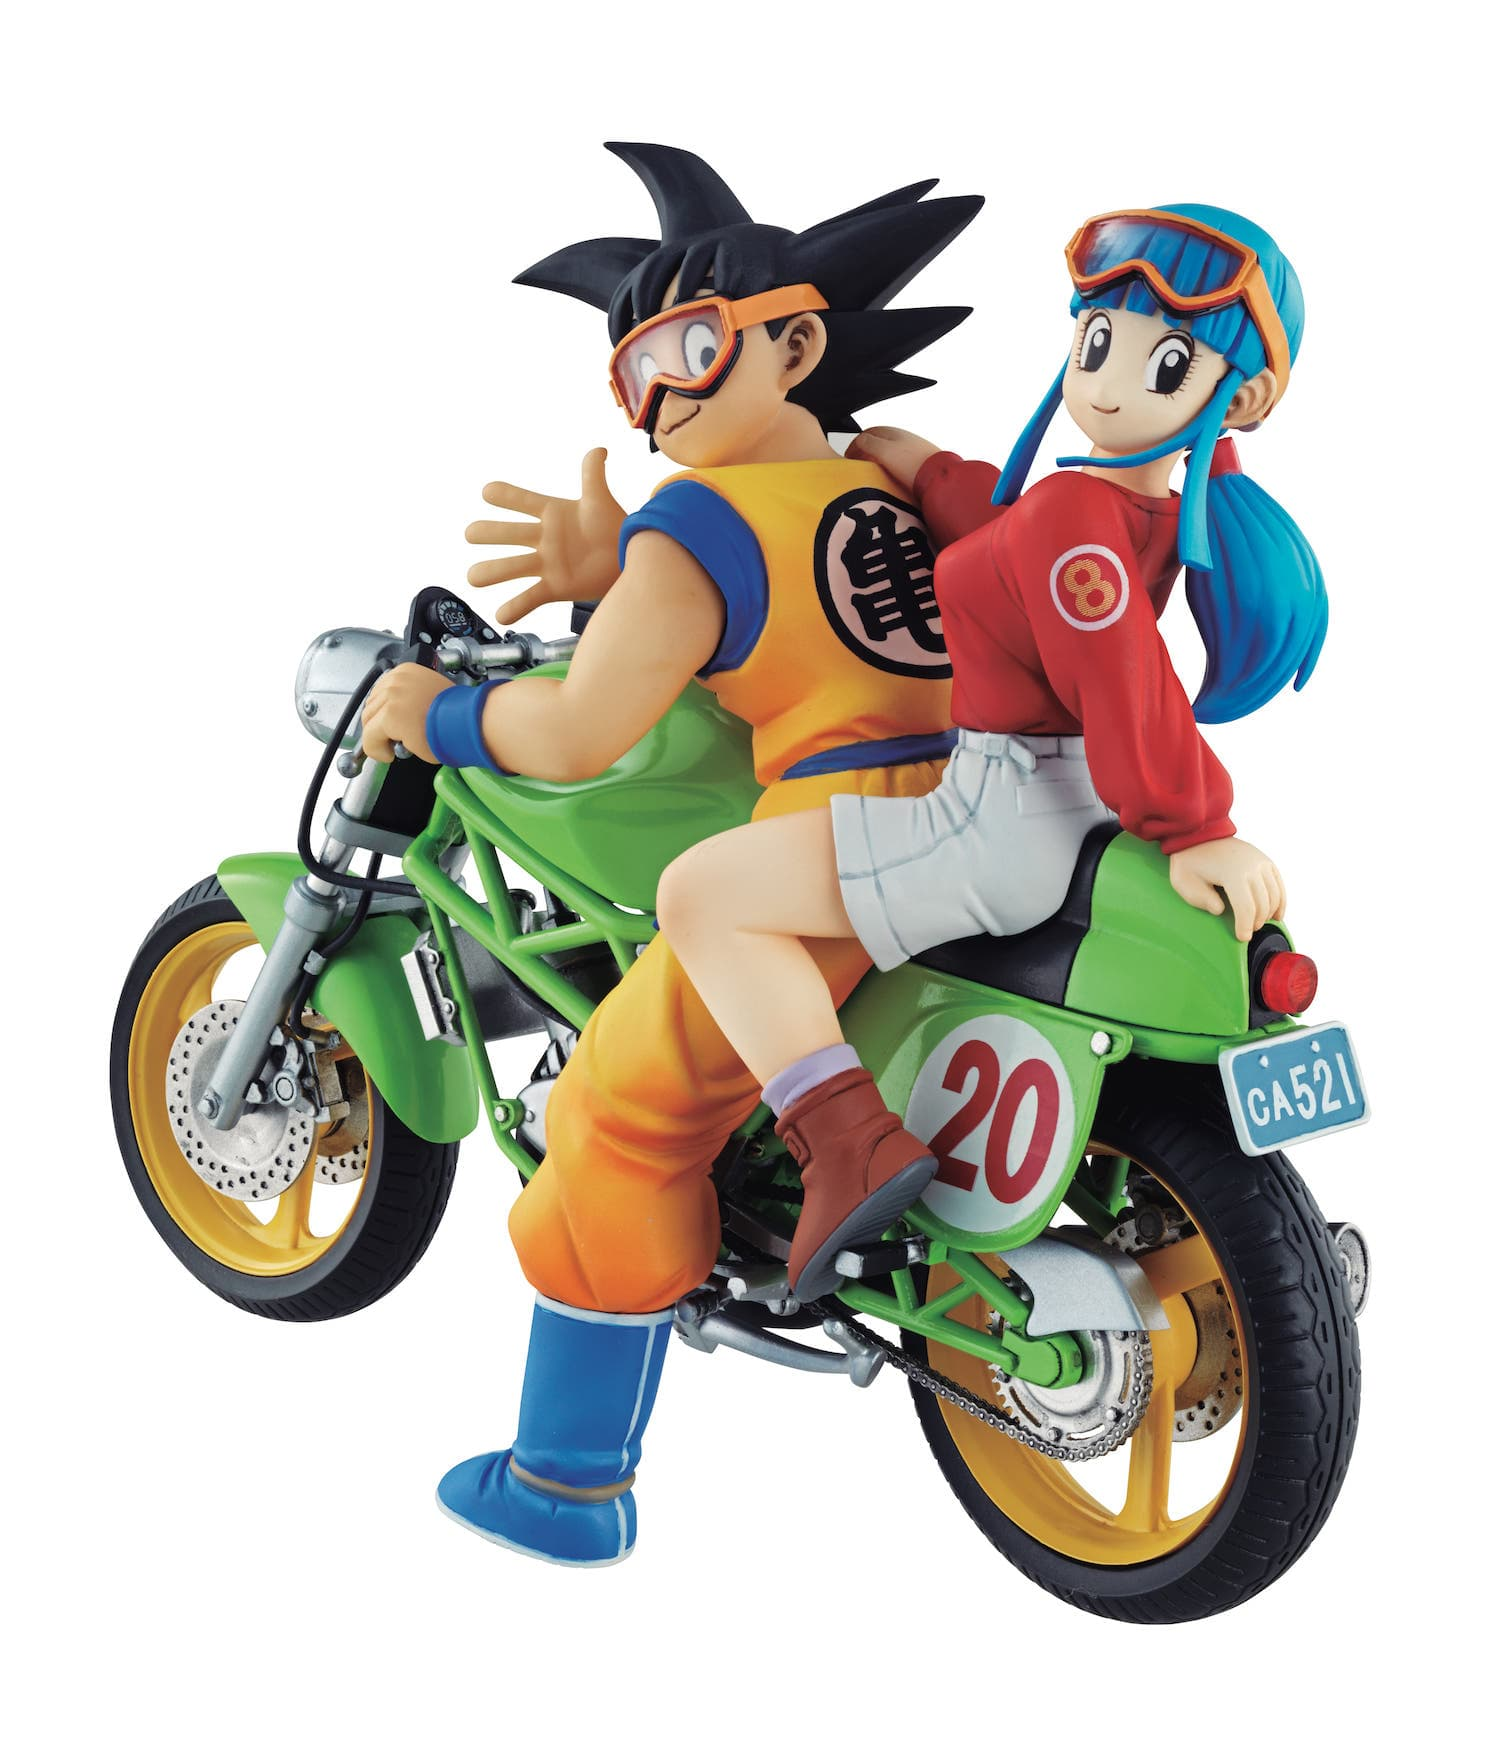 SON GOKU & CHICHI EN MOTO 2 FIGURAS 15 CM DRAGON BALL Z DESKTOP REAL MCCOY